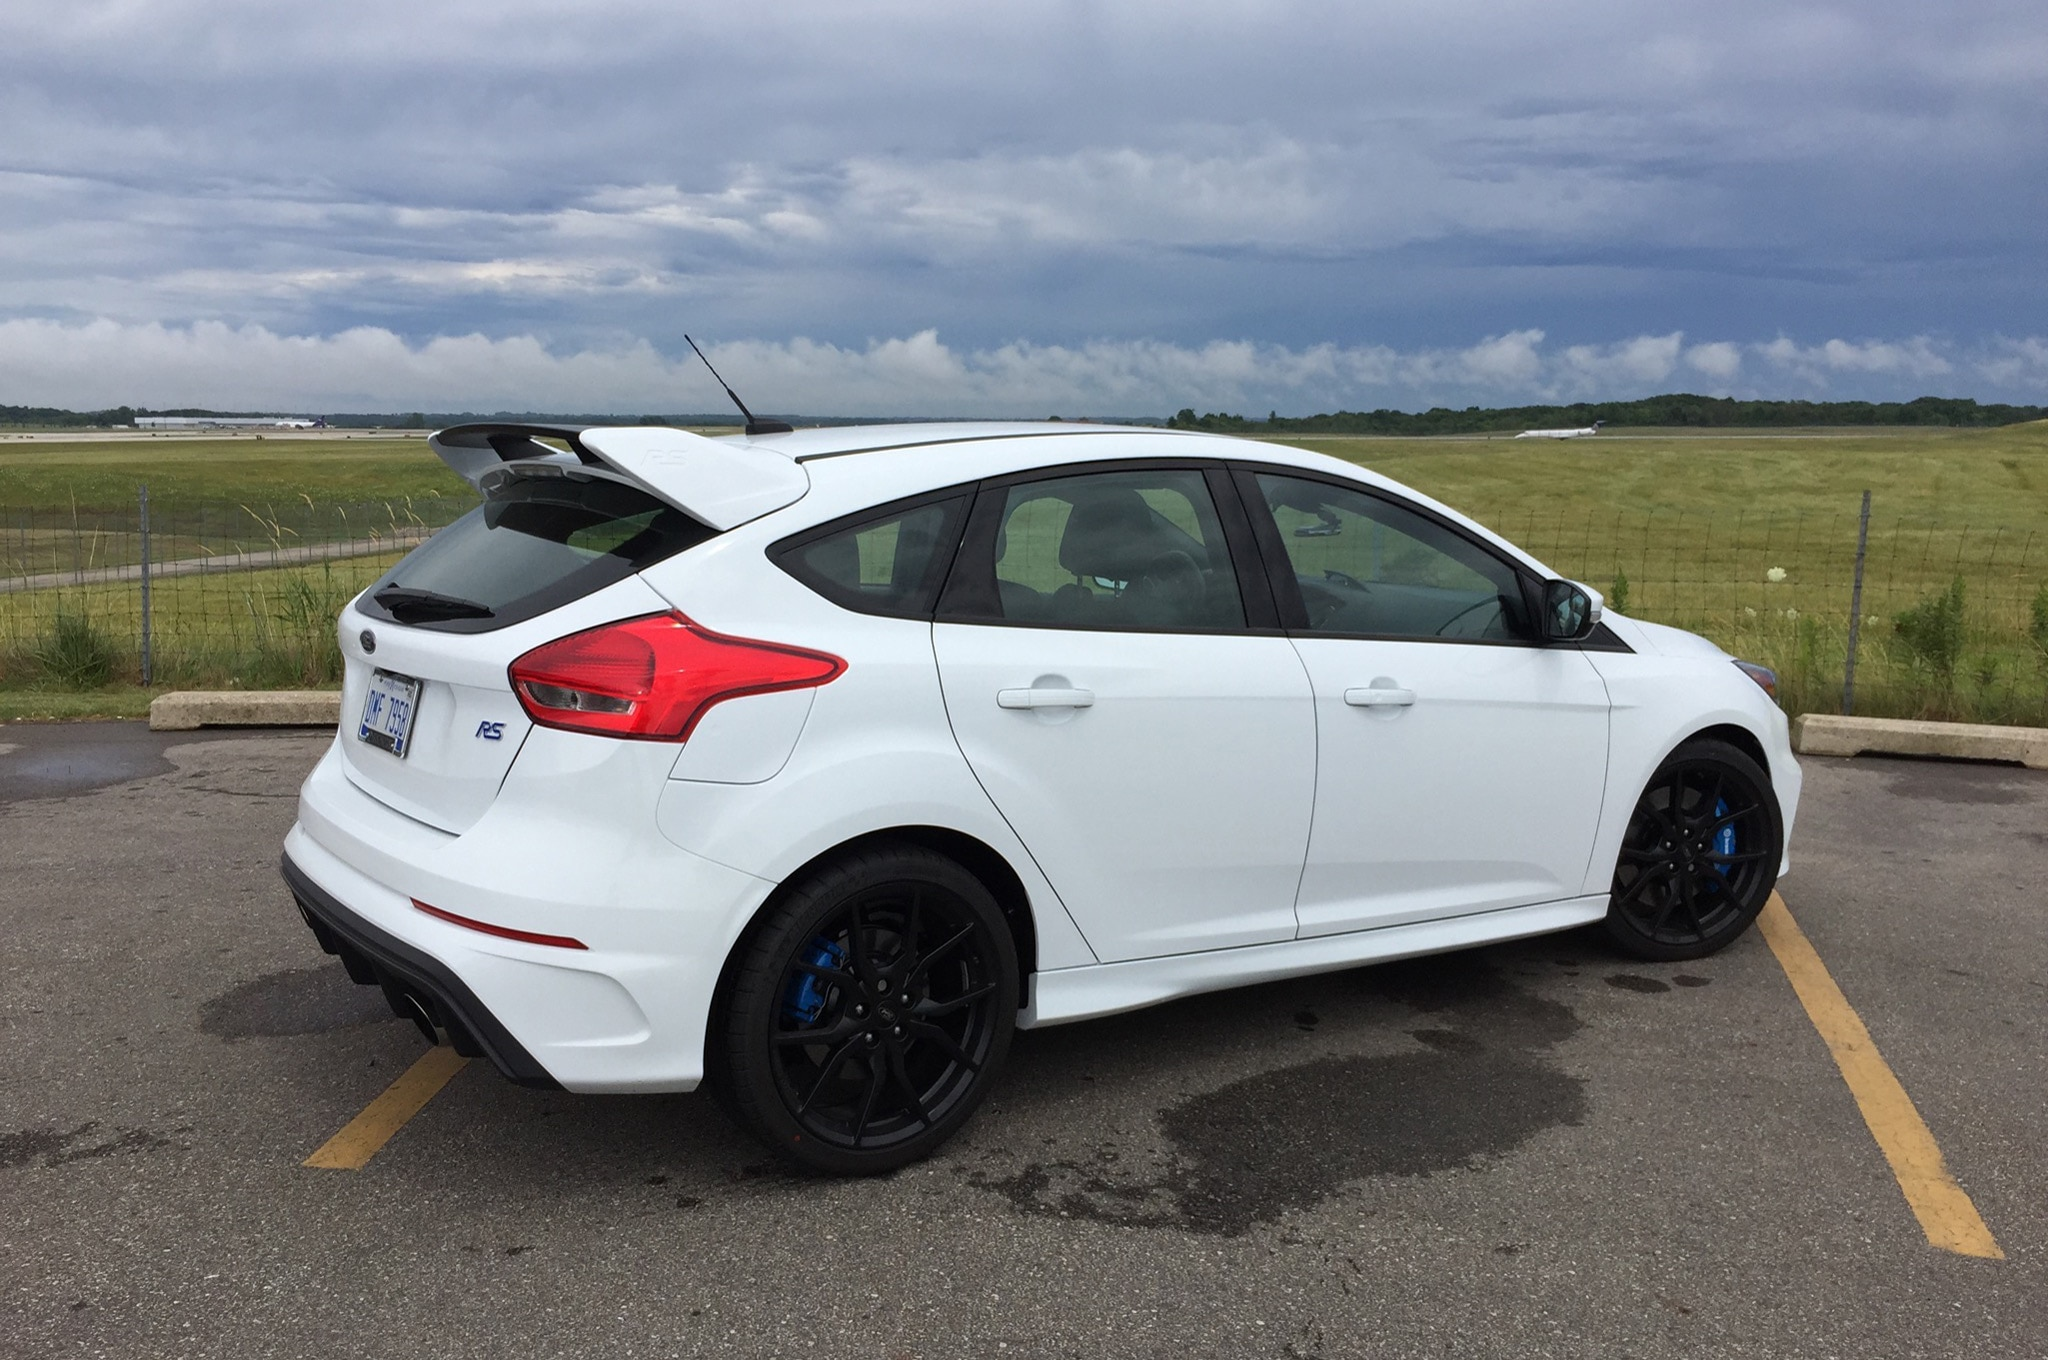 Ford Focus Hatchback Rims >> 2016 Ford Focus RS: The Ownership Experience, Part 3 | Automobile Magazine